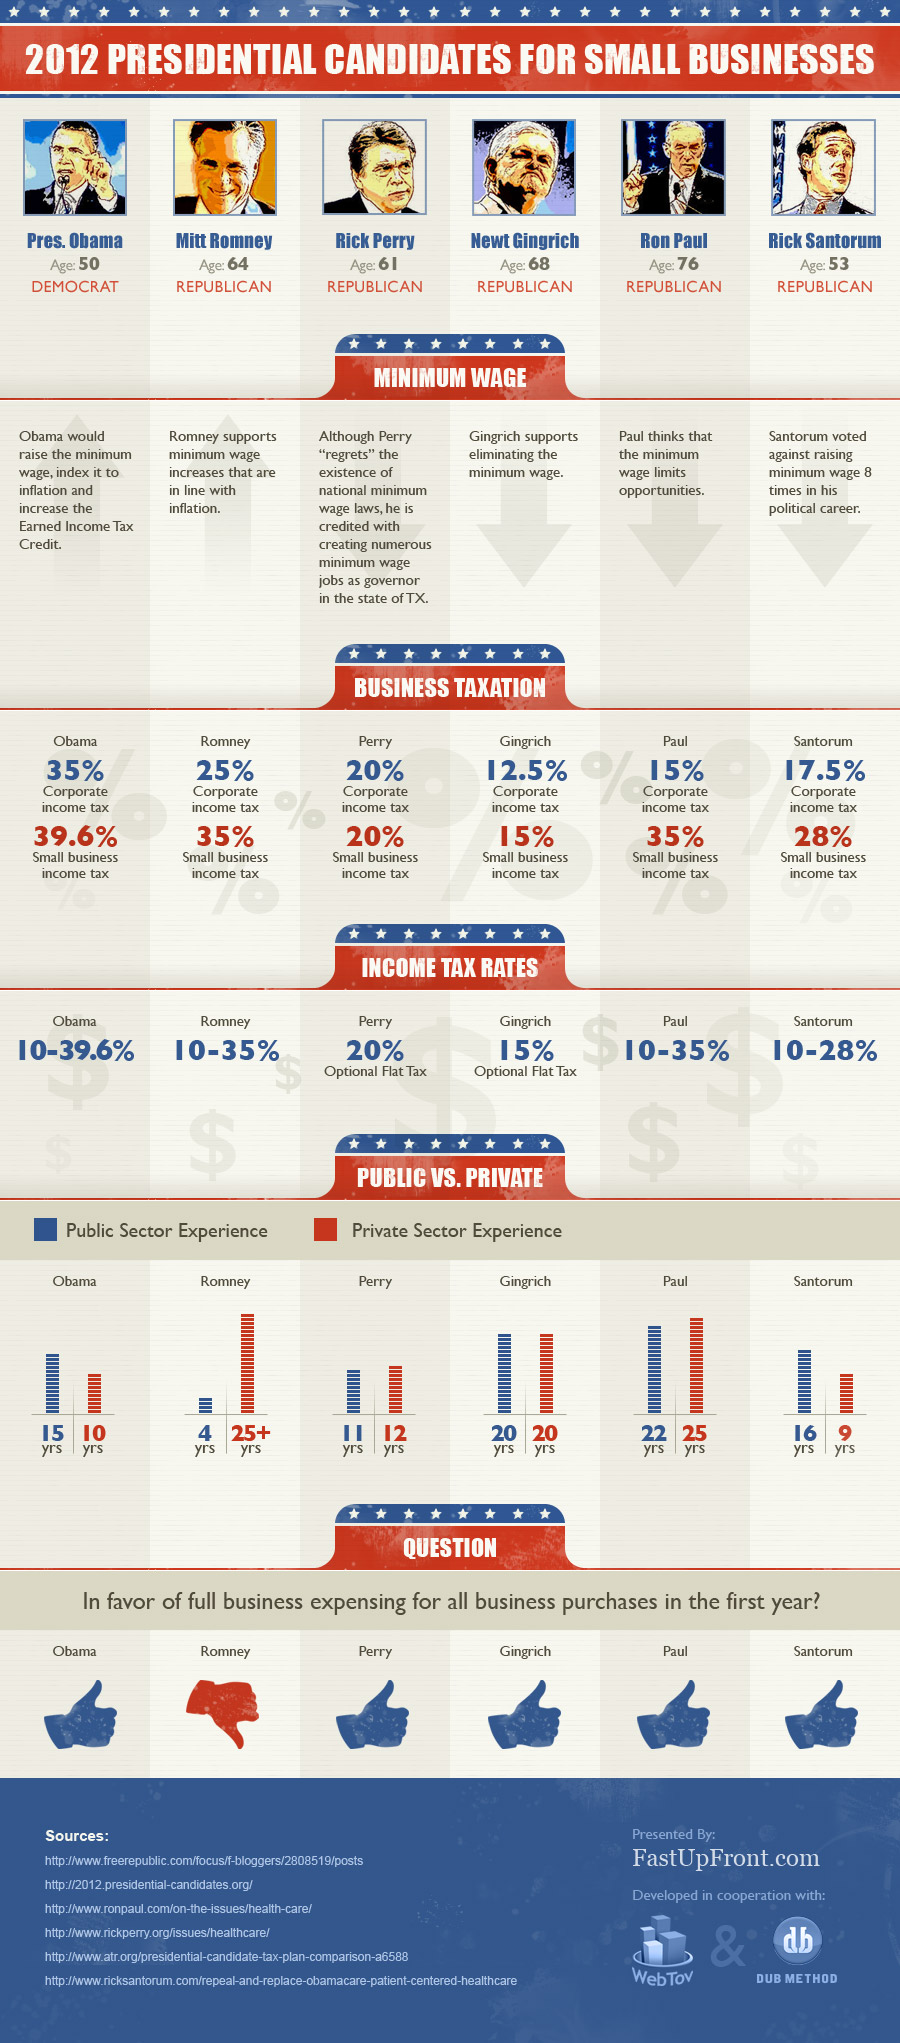 Who Should Businesses Vote for in 2012?